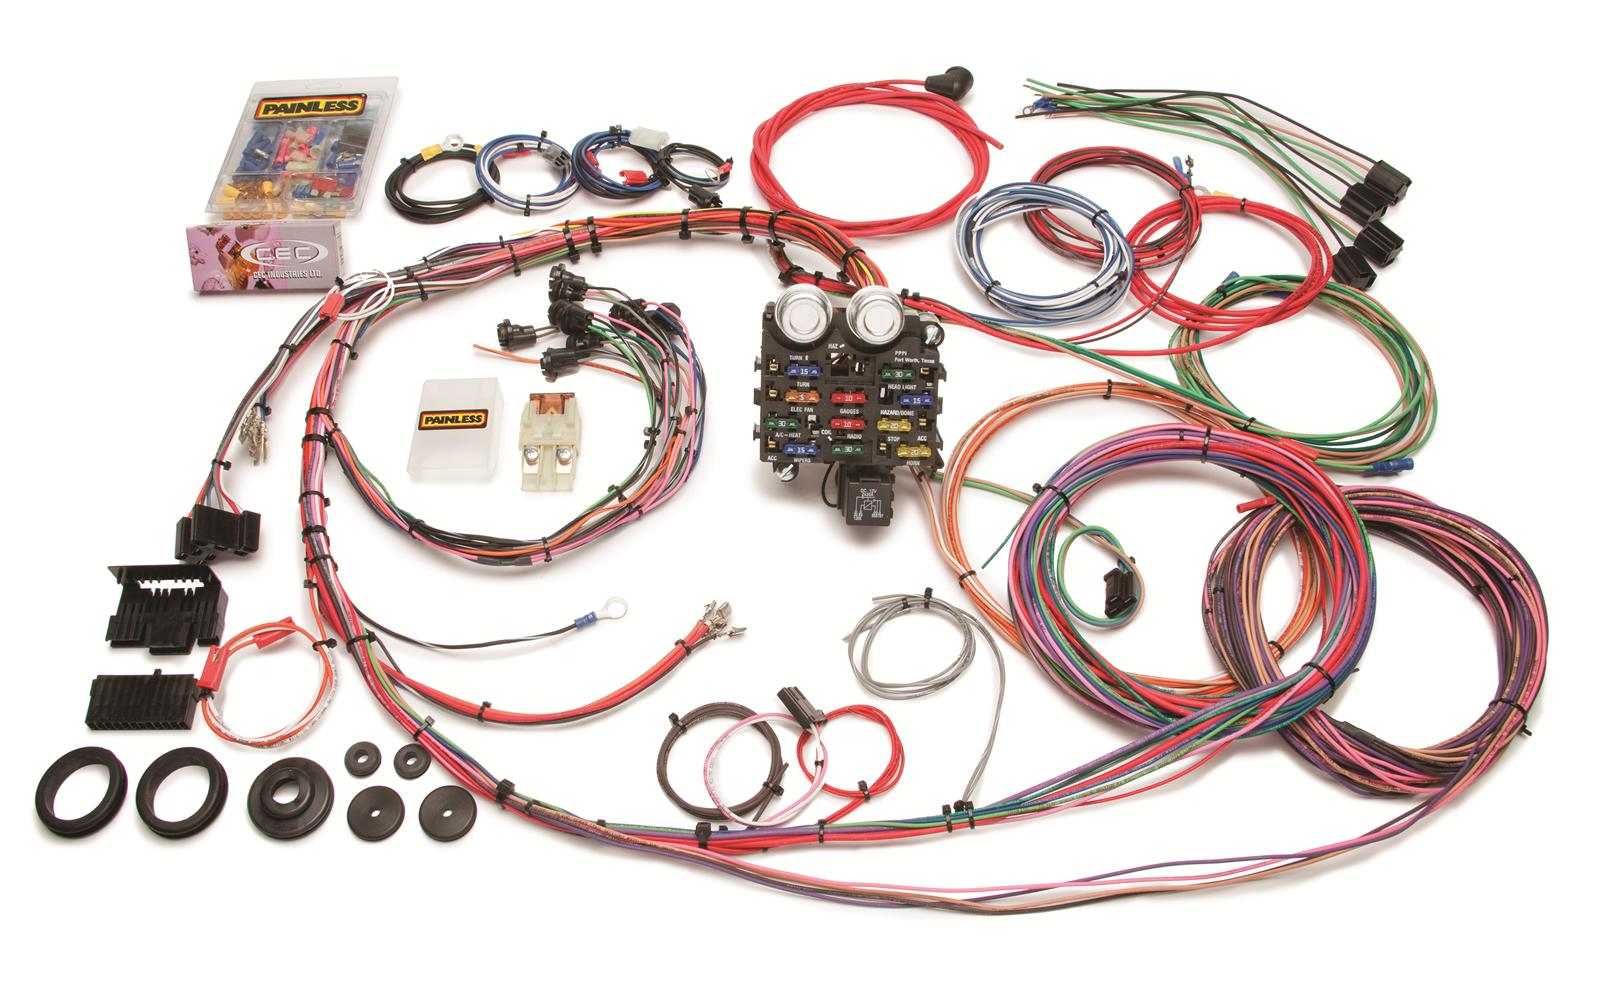 Painless Wiring Harness Kit Real Diagram 1972 Nova Wire 10112 12 Circuit Dash For 1966 Chevelle